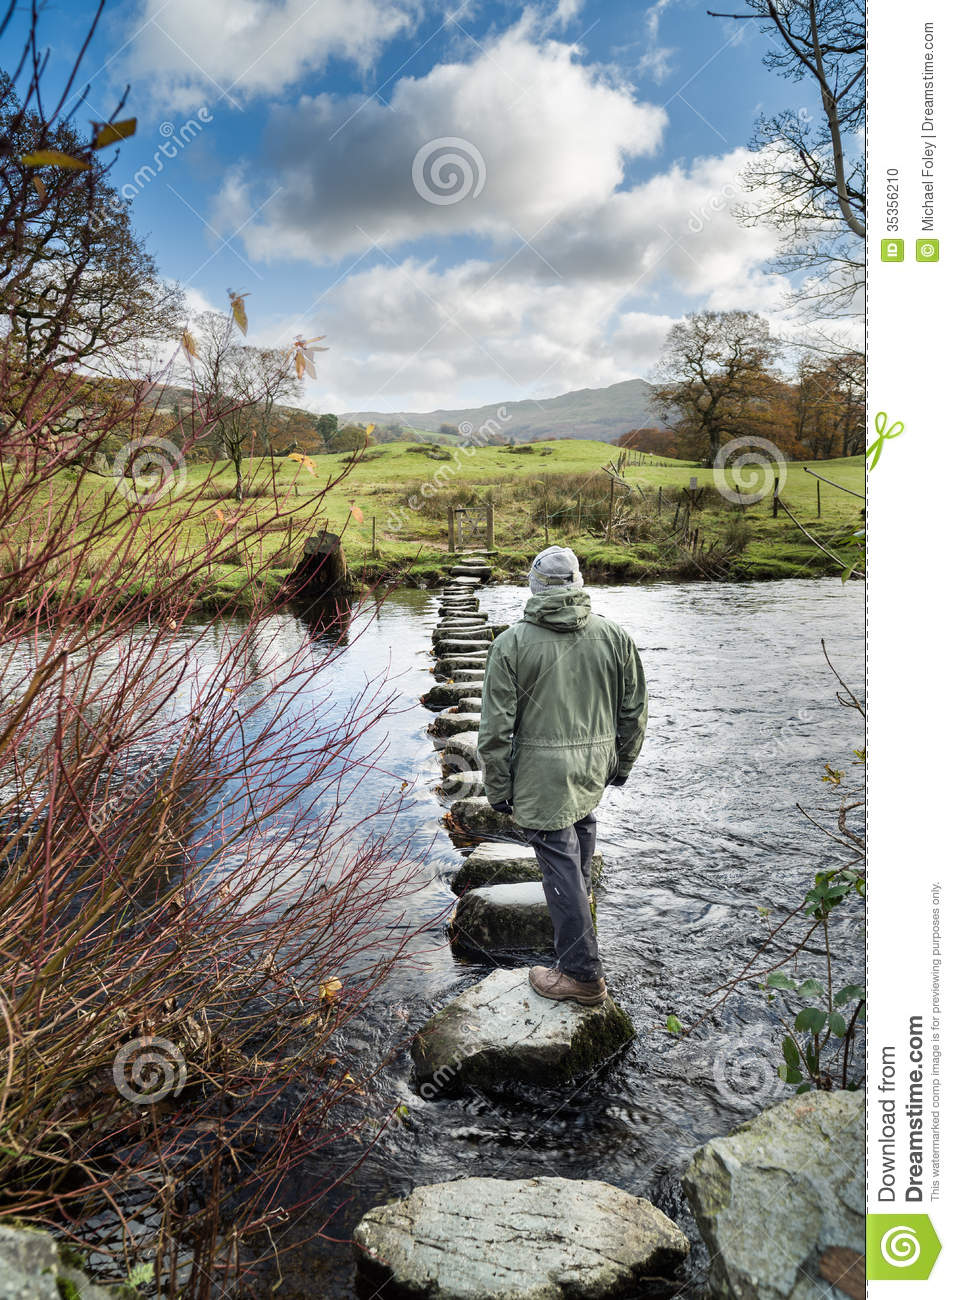 Stepping Stones Stock Photo - Image: 35356210 Stepping Stones Online